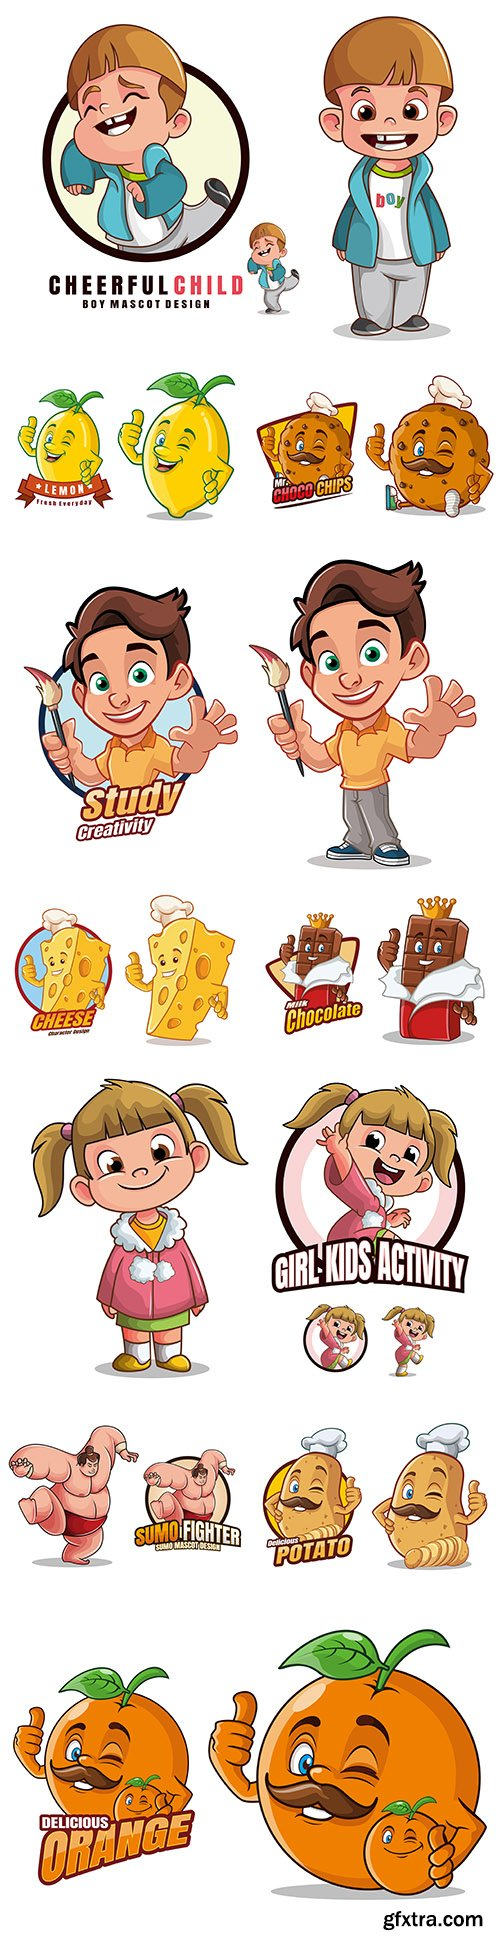 Mascot funny cartoon character design illustration 2